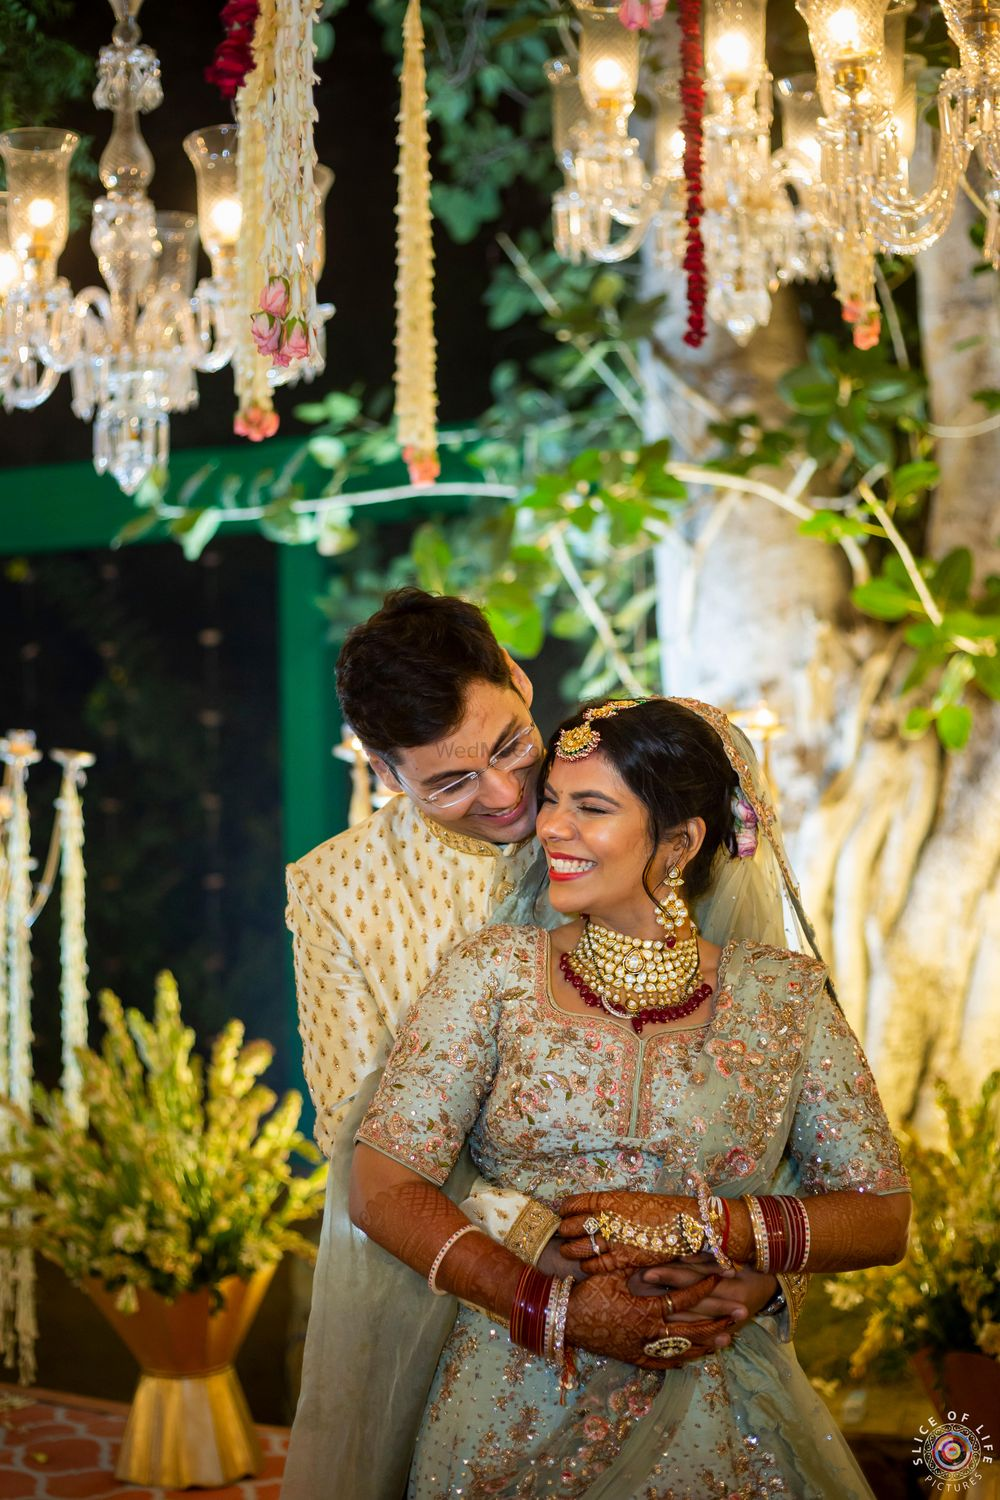 Photo From Vritti & Gautam - By Slice of Life Pictures